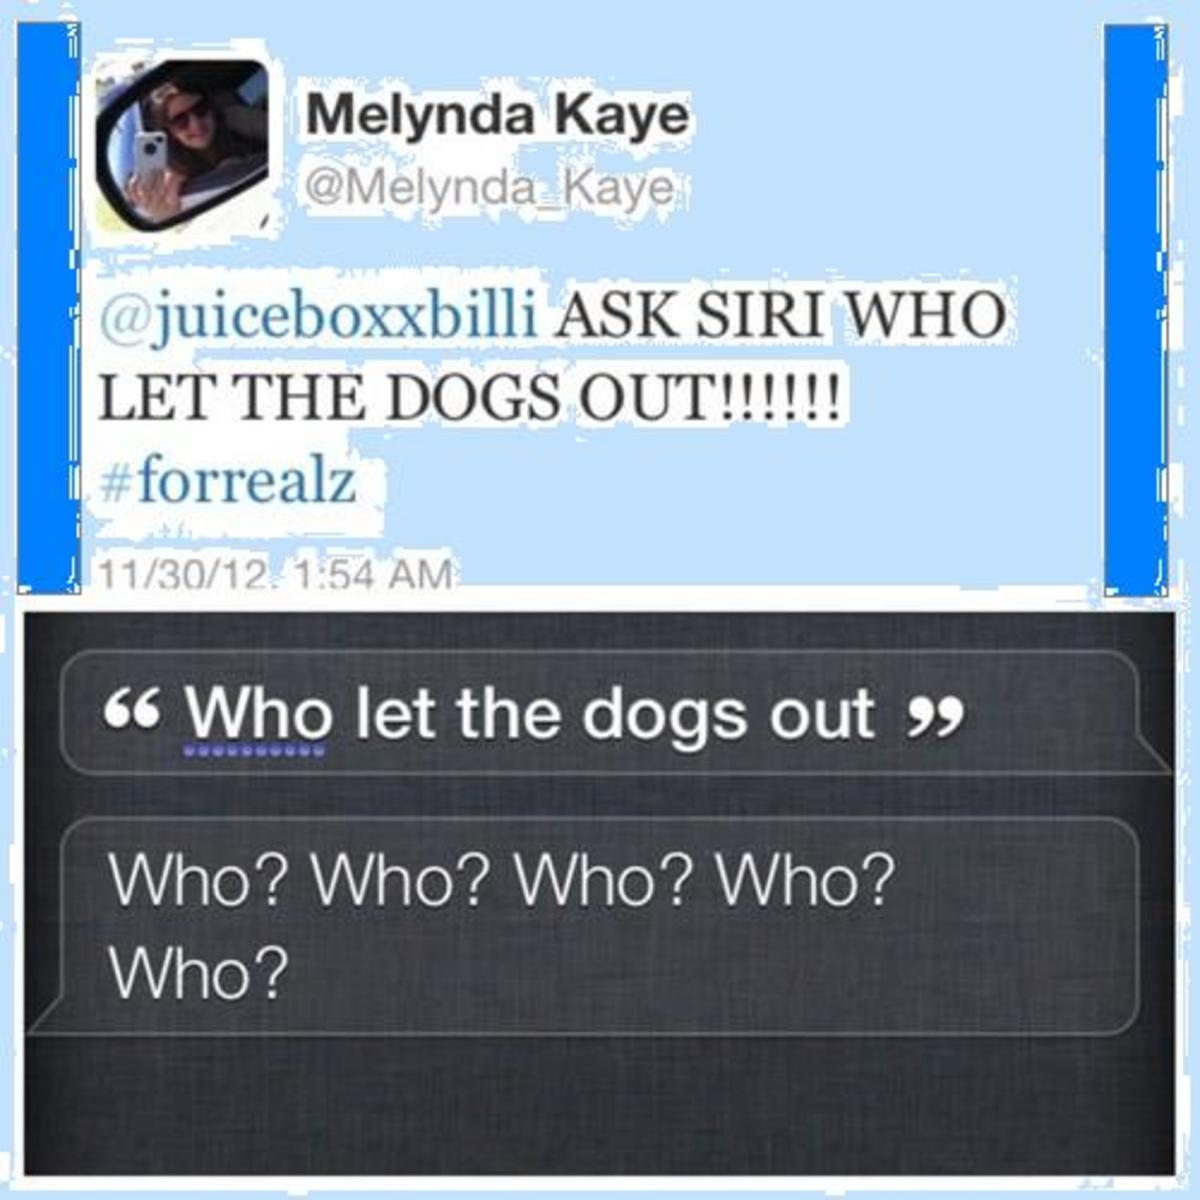 Funny Jokes to Ask Siri